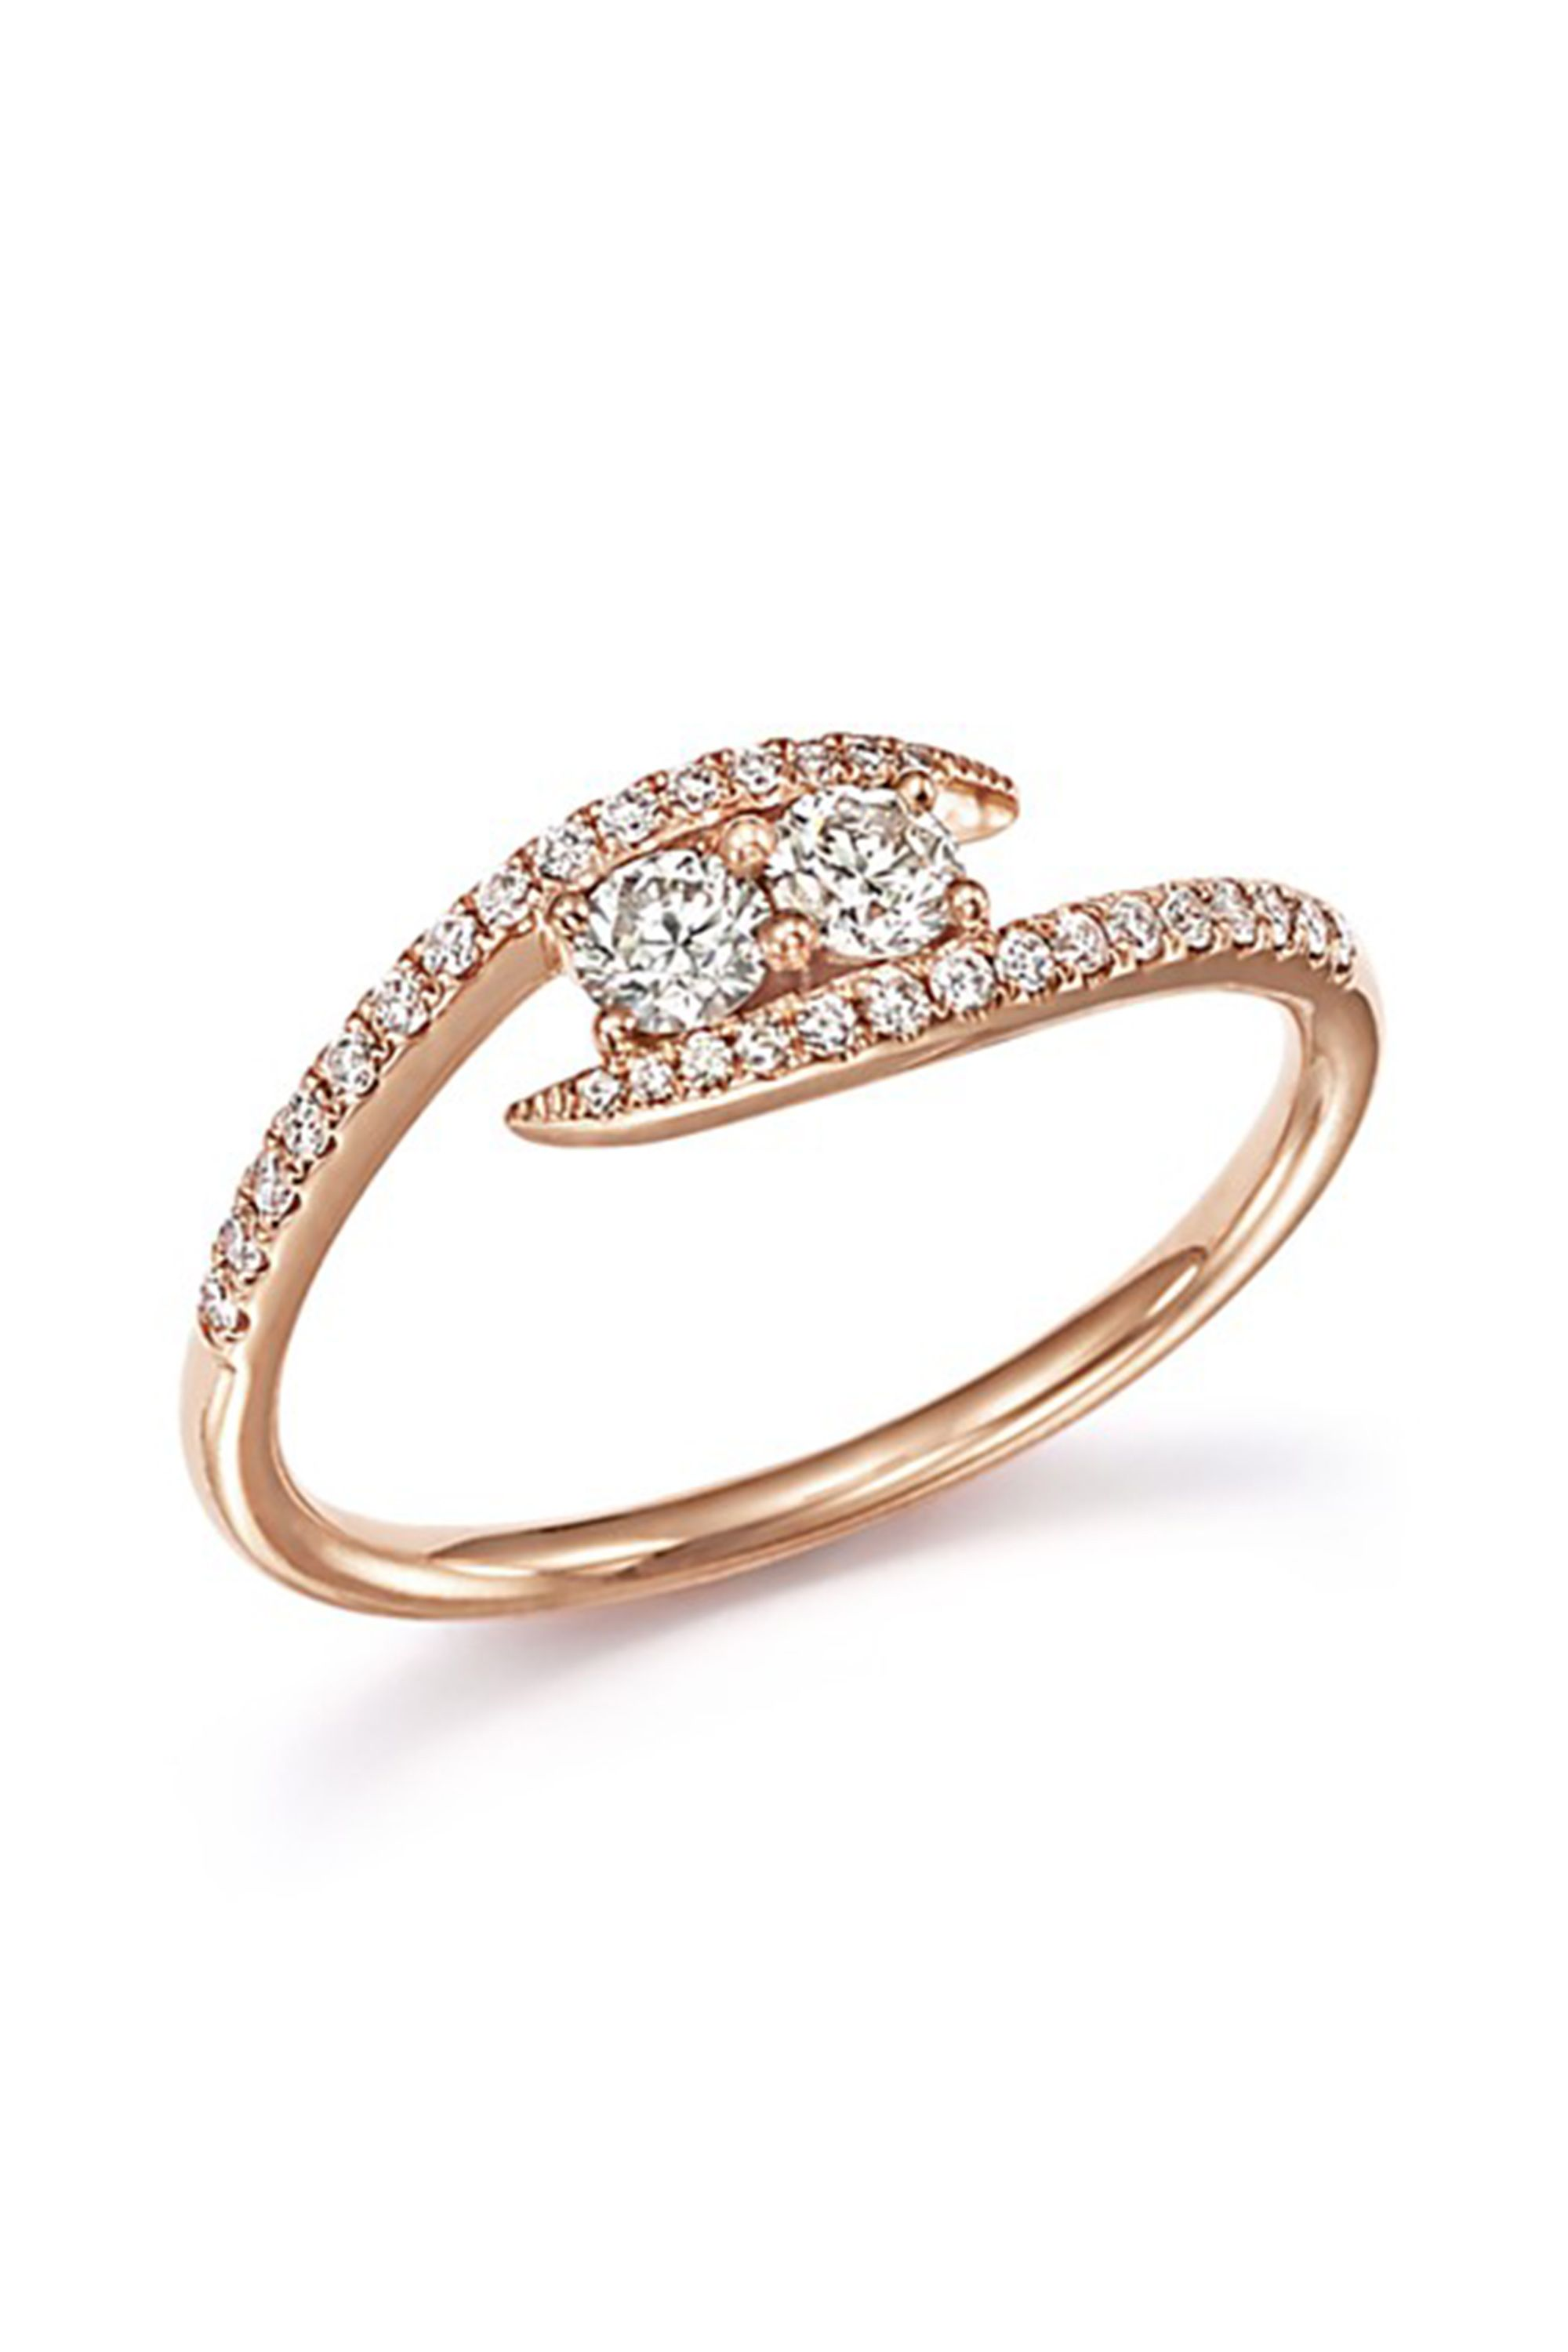 hexagon boston simple diamond hexagonal rings cut styles engagement rose london the ring rachel